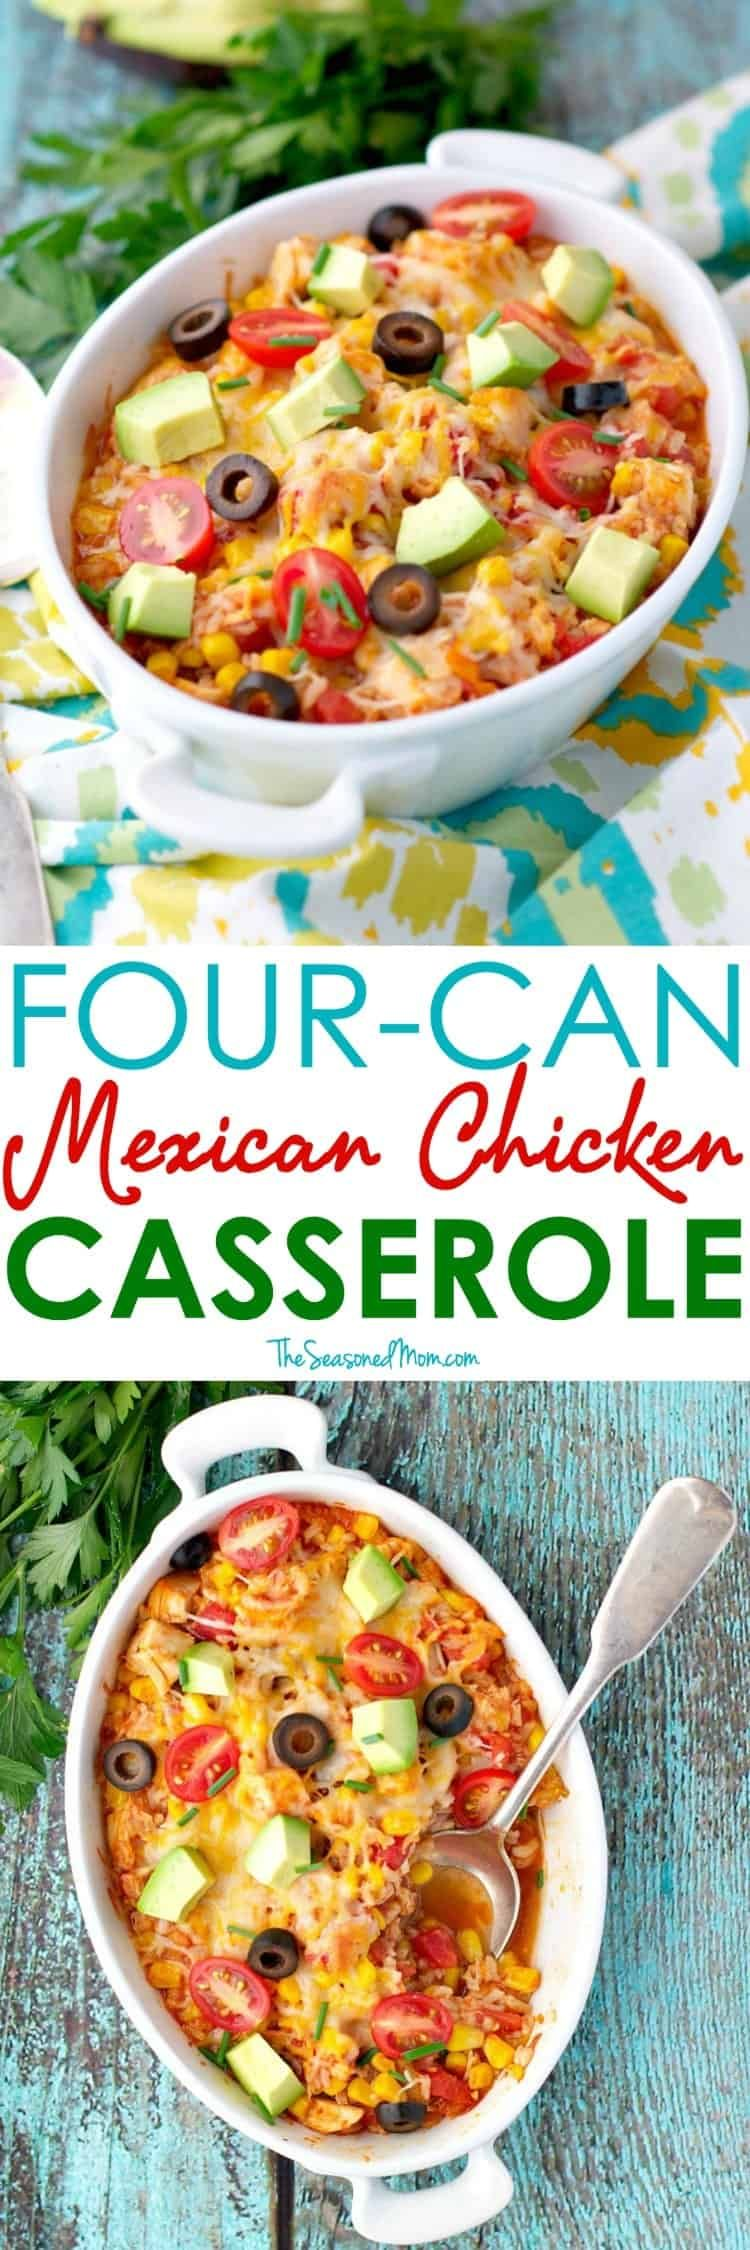 4 Can Mexican Chicken Casserole This 4 Can Mexican Chicken Casserole comes together in about 5 minutes and can be prepared ahead of time for a family-friendly easy dinner on busy nights!